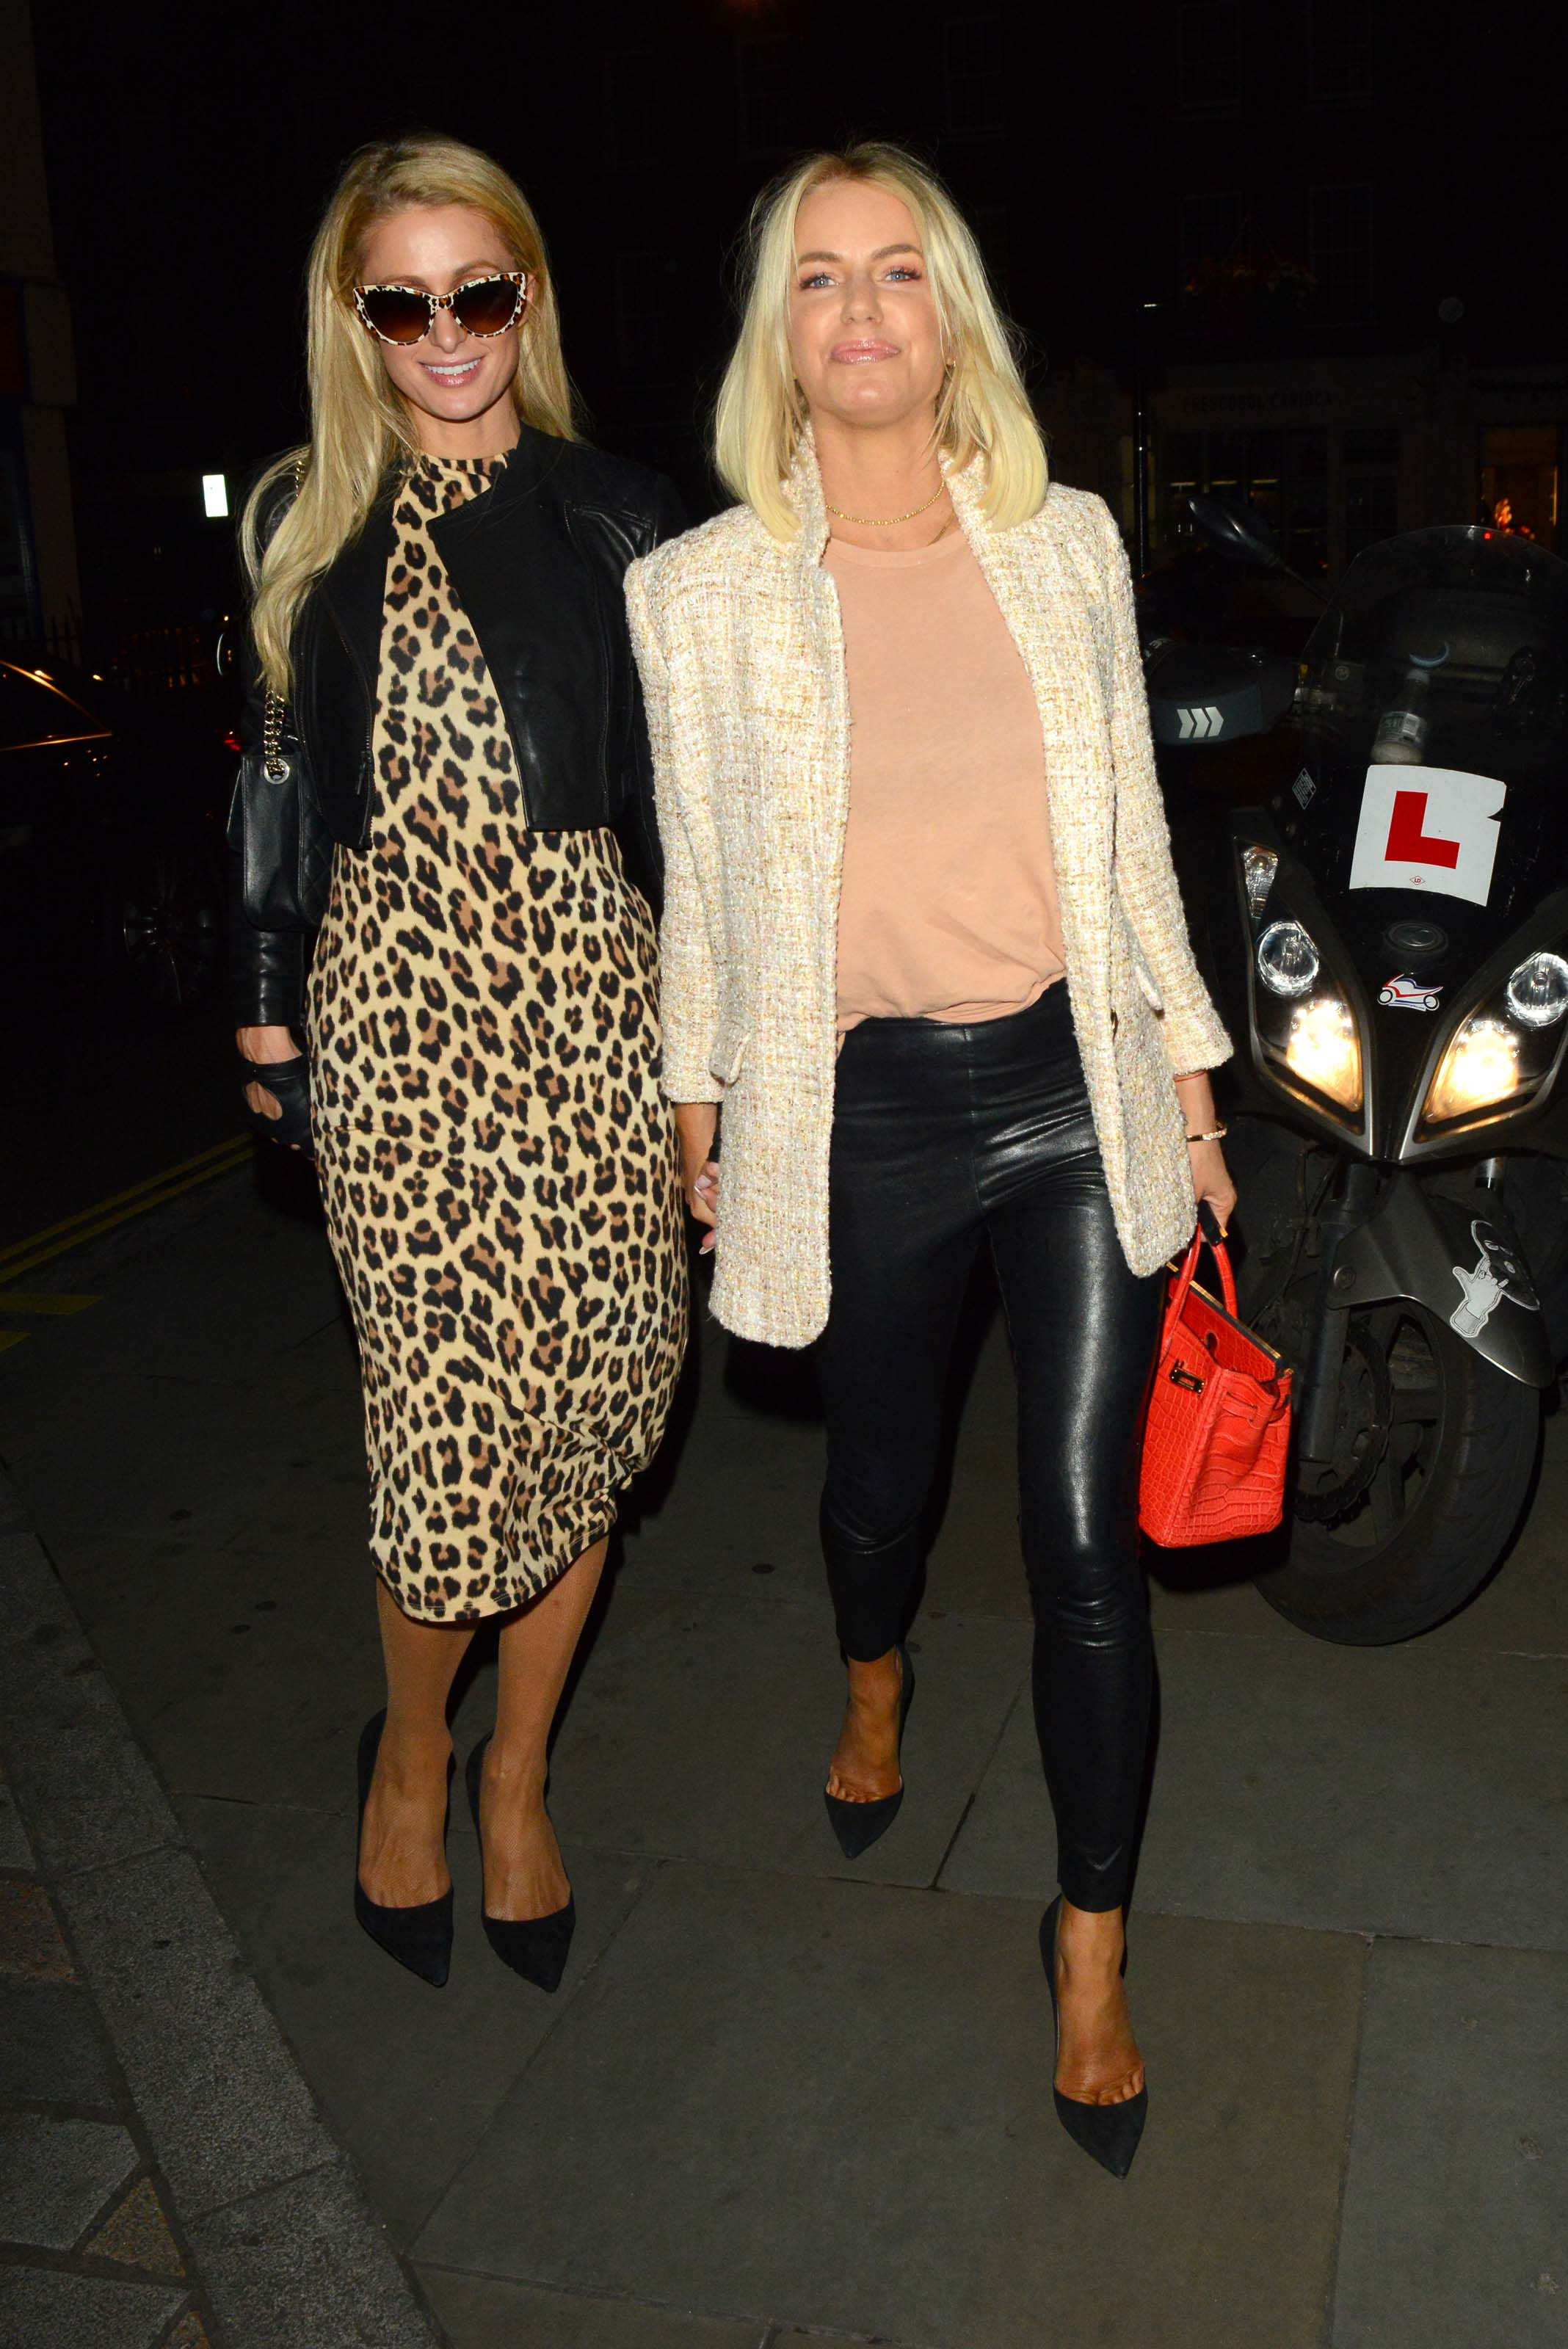 Paris Hilton & Caroline Stanbury arrive at Chiltern Firehouse